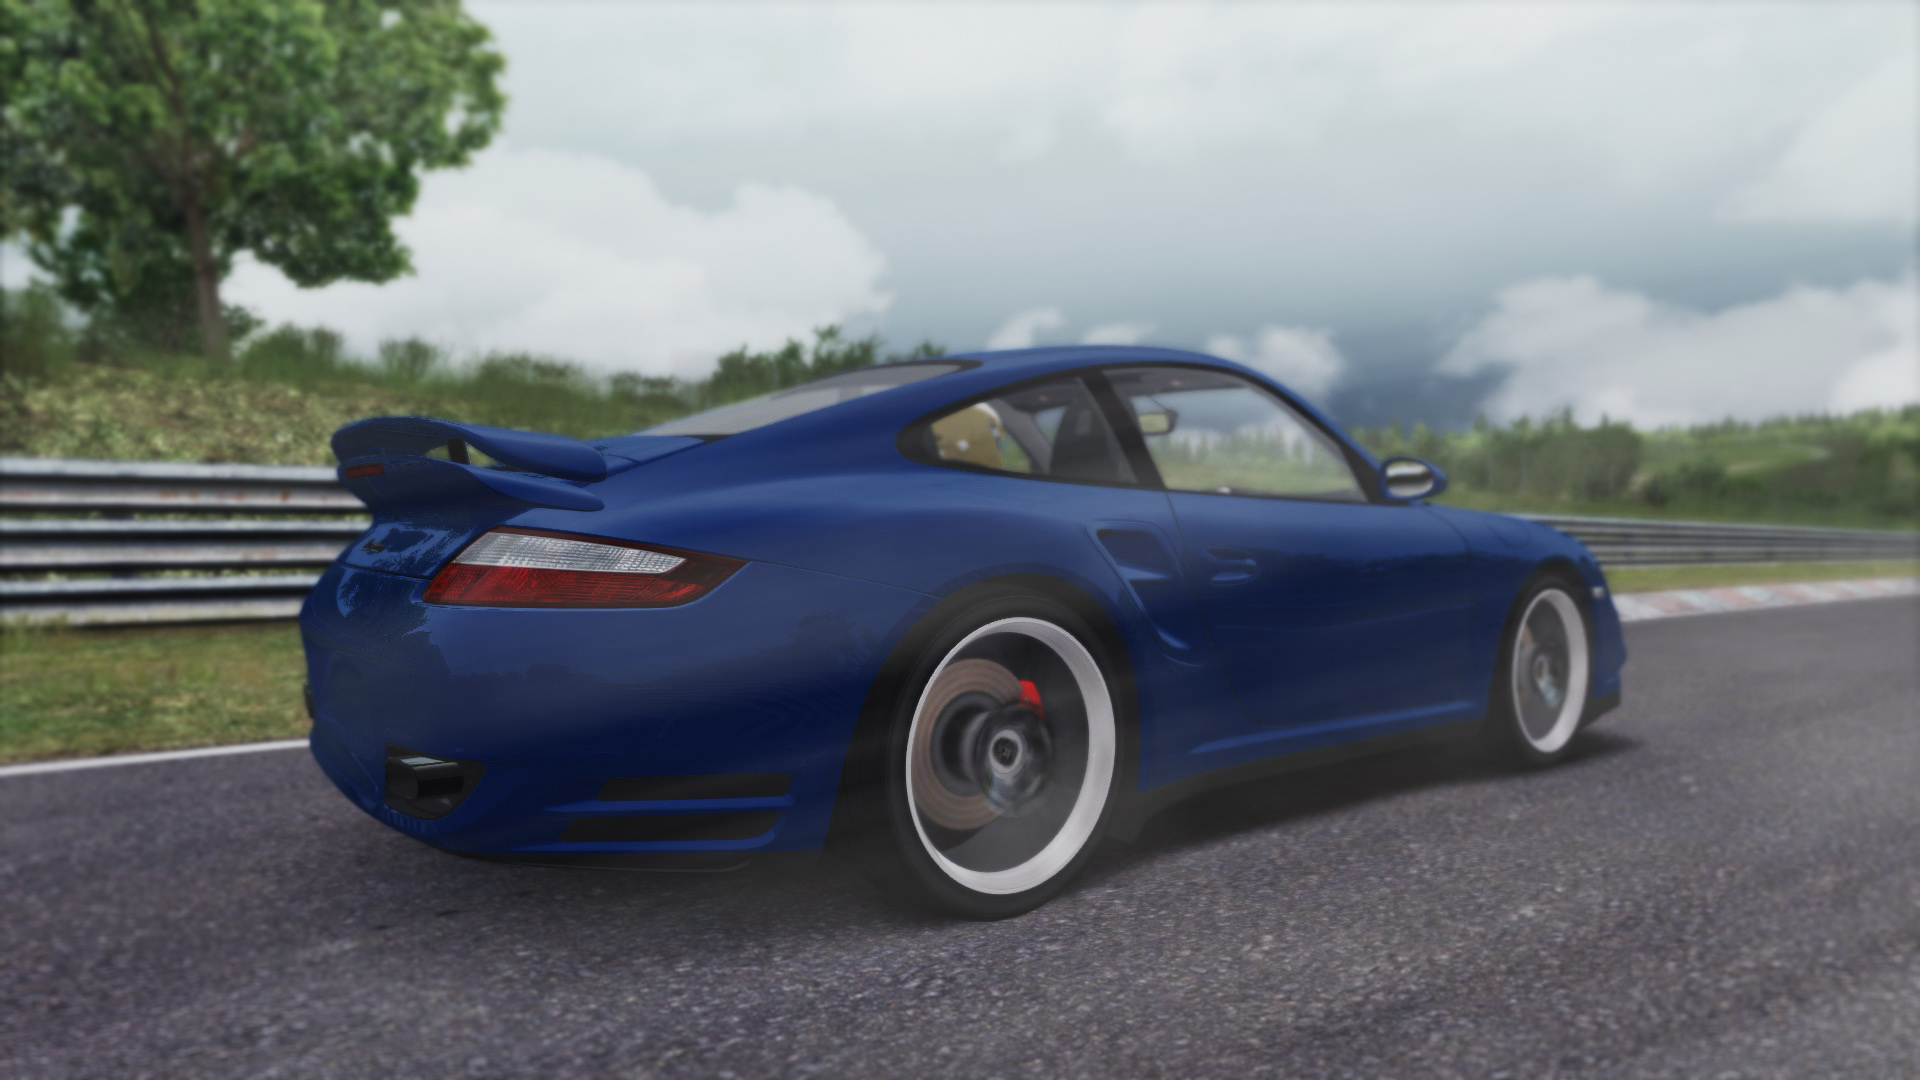 Screenshot_porsche_997turbo_ks_nordschleife_17-8-115-15-1-6.jpg